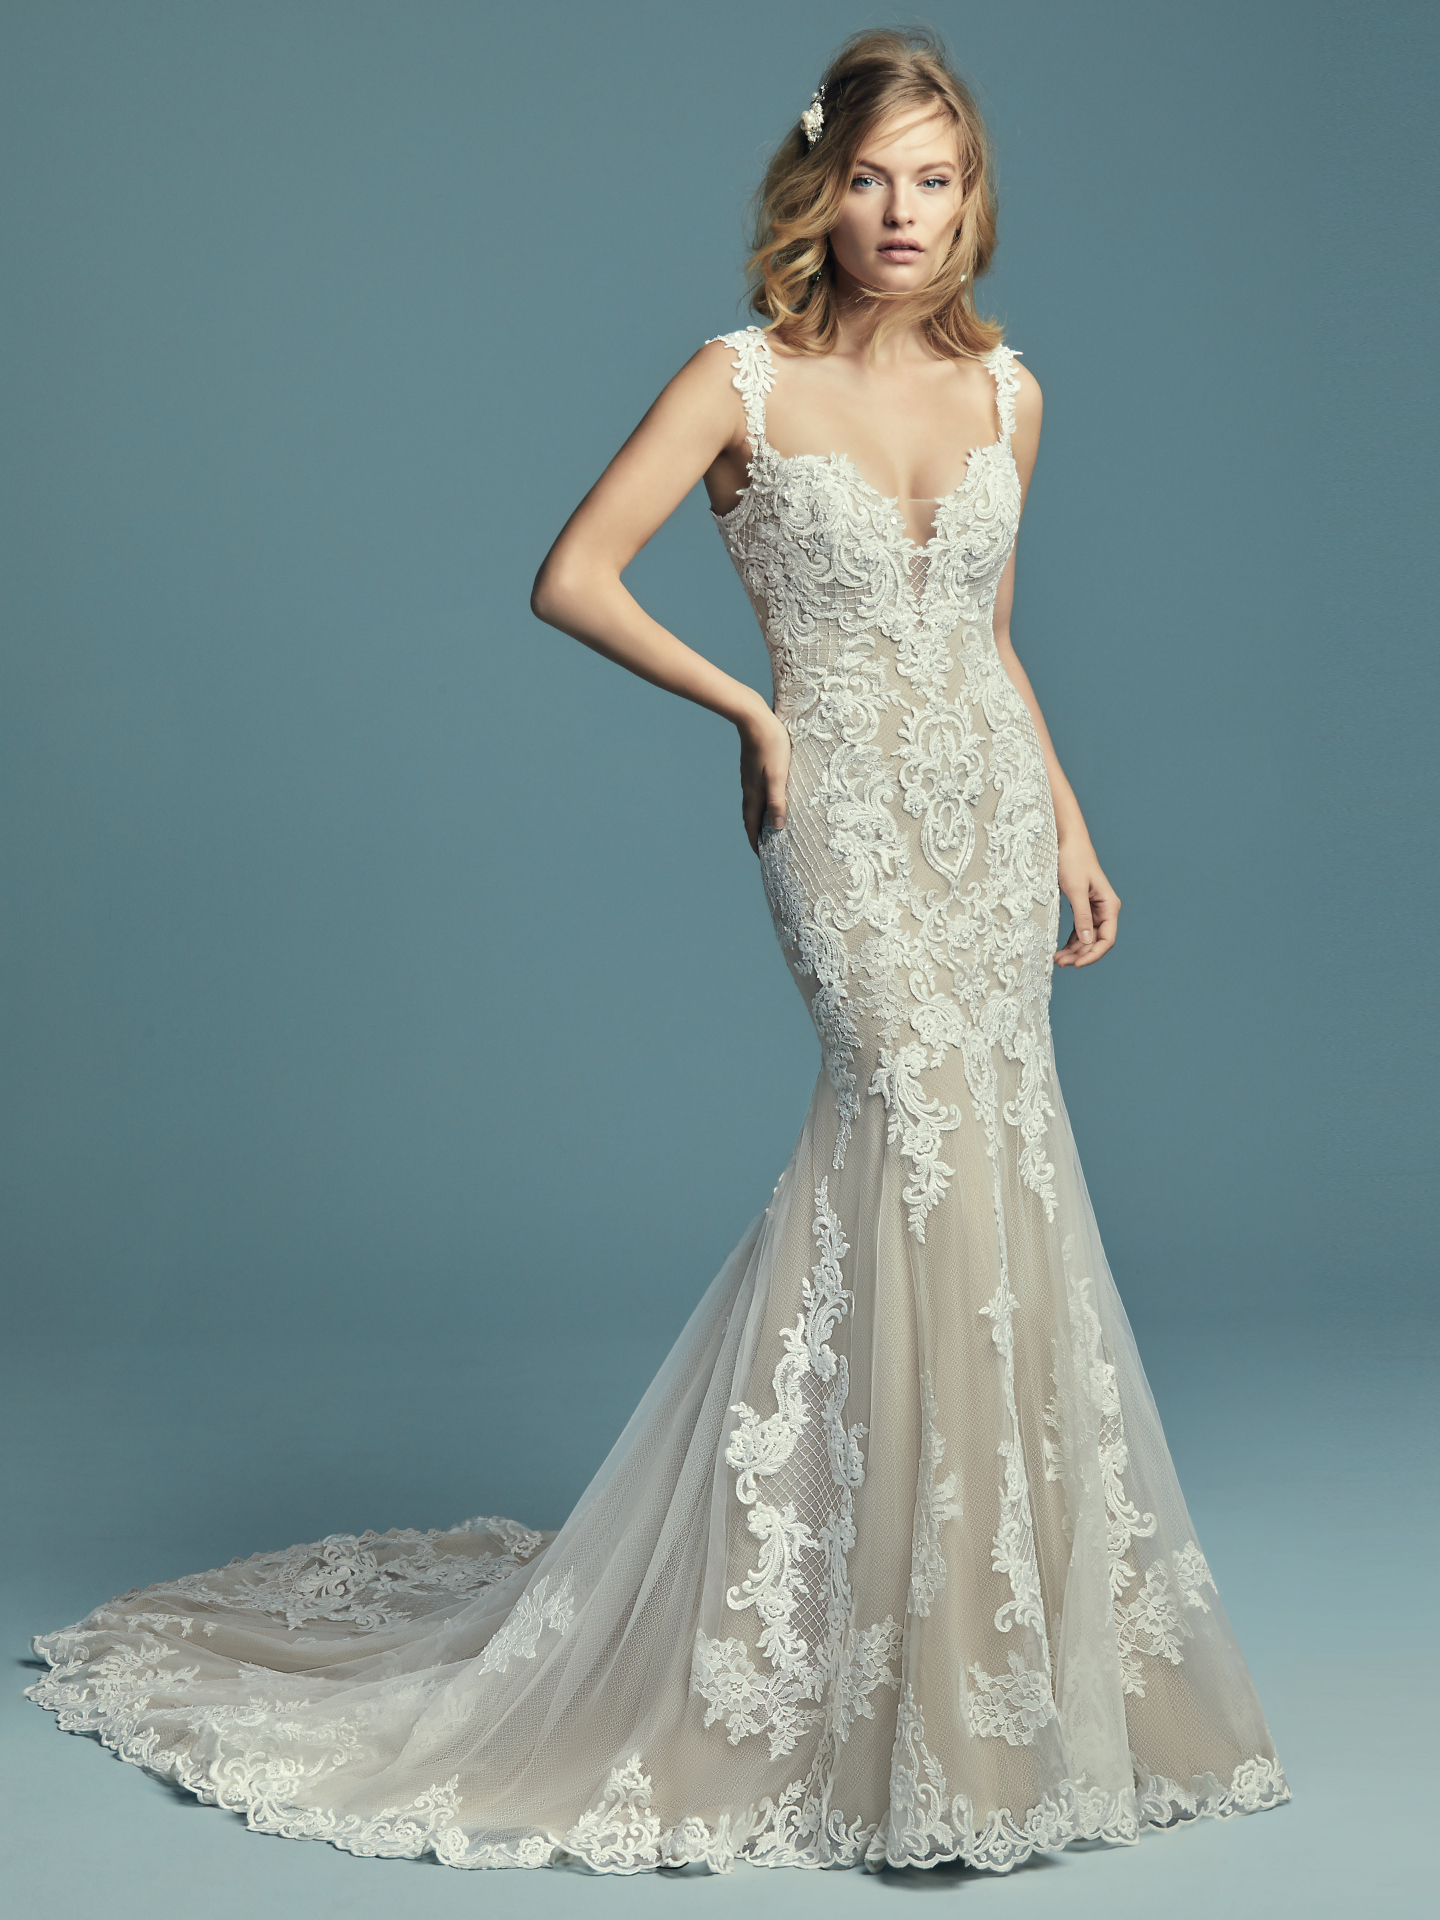 Quick Delivery Wedding Dresses For Your Upcoming Wedding. Abbie by Maggie Sottero.